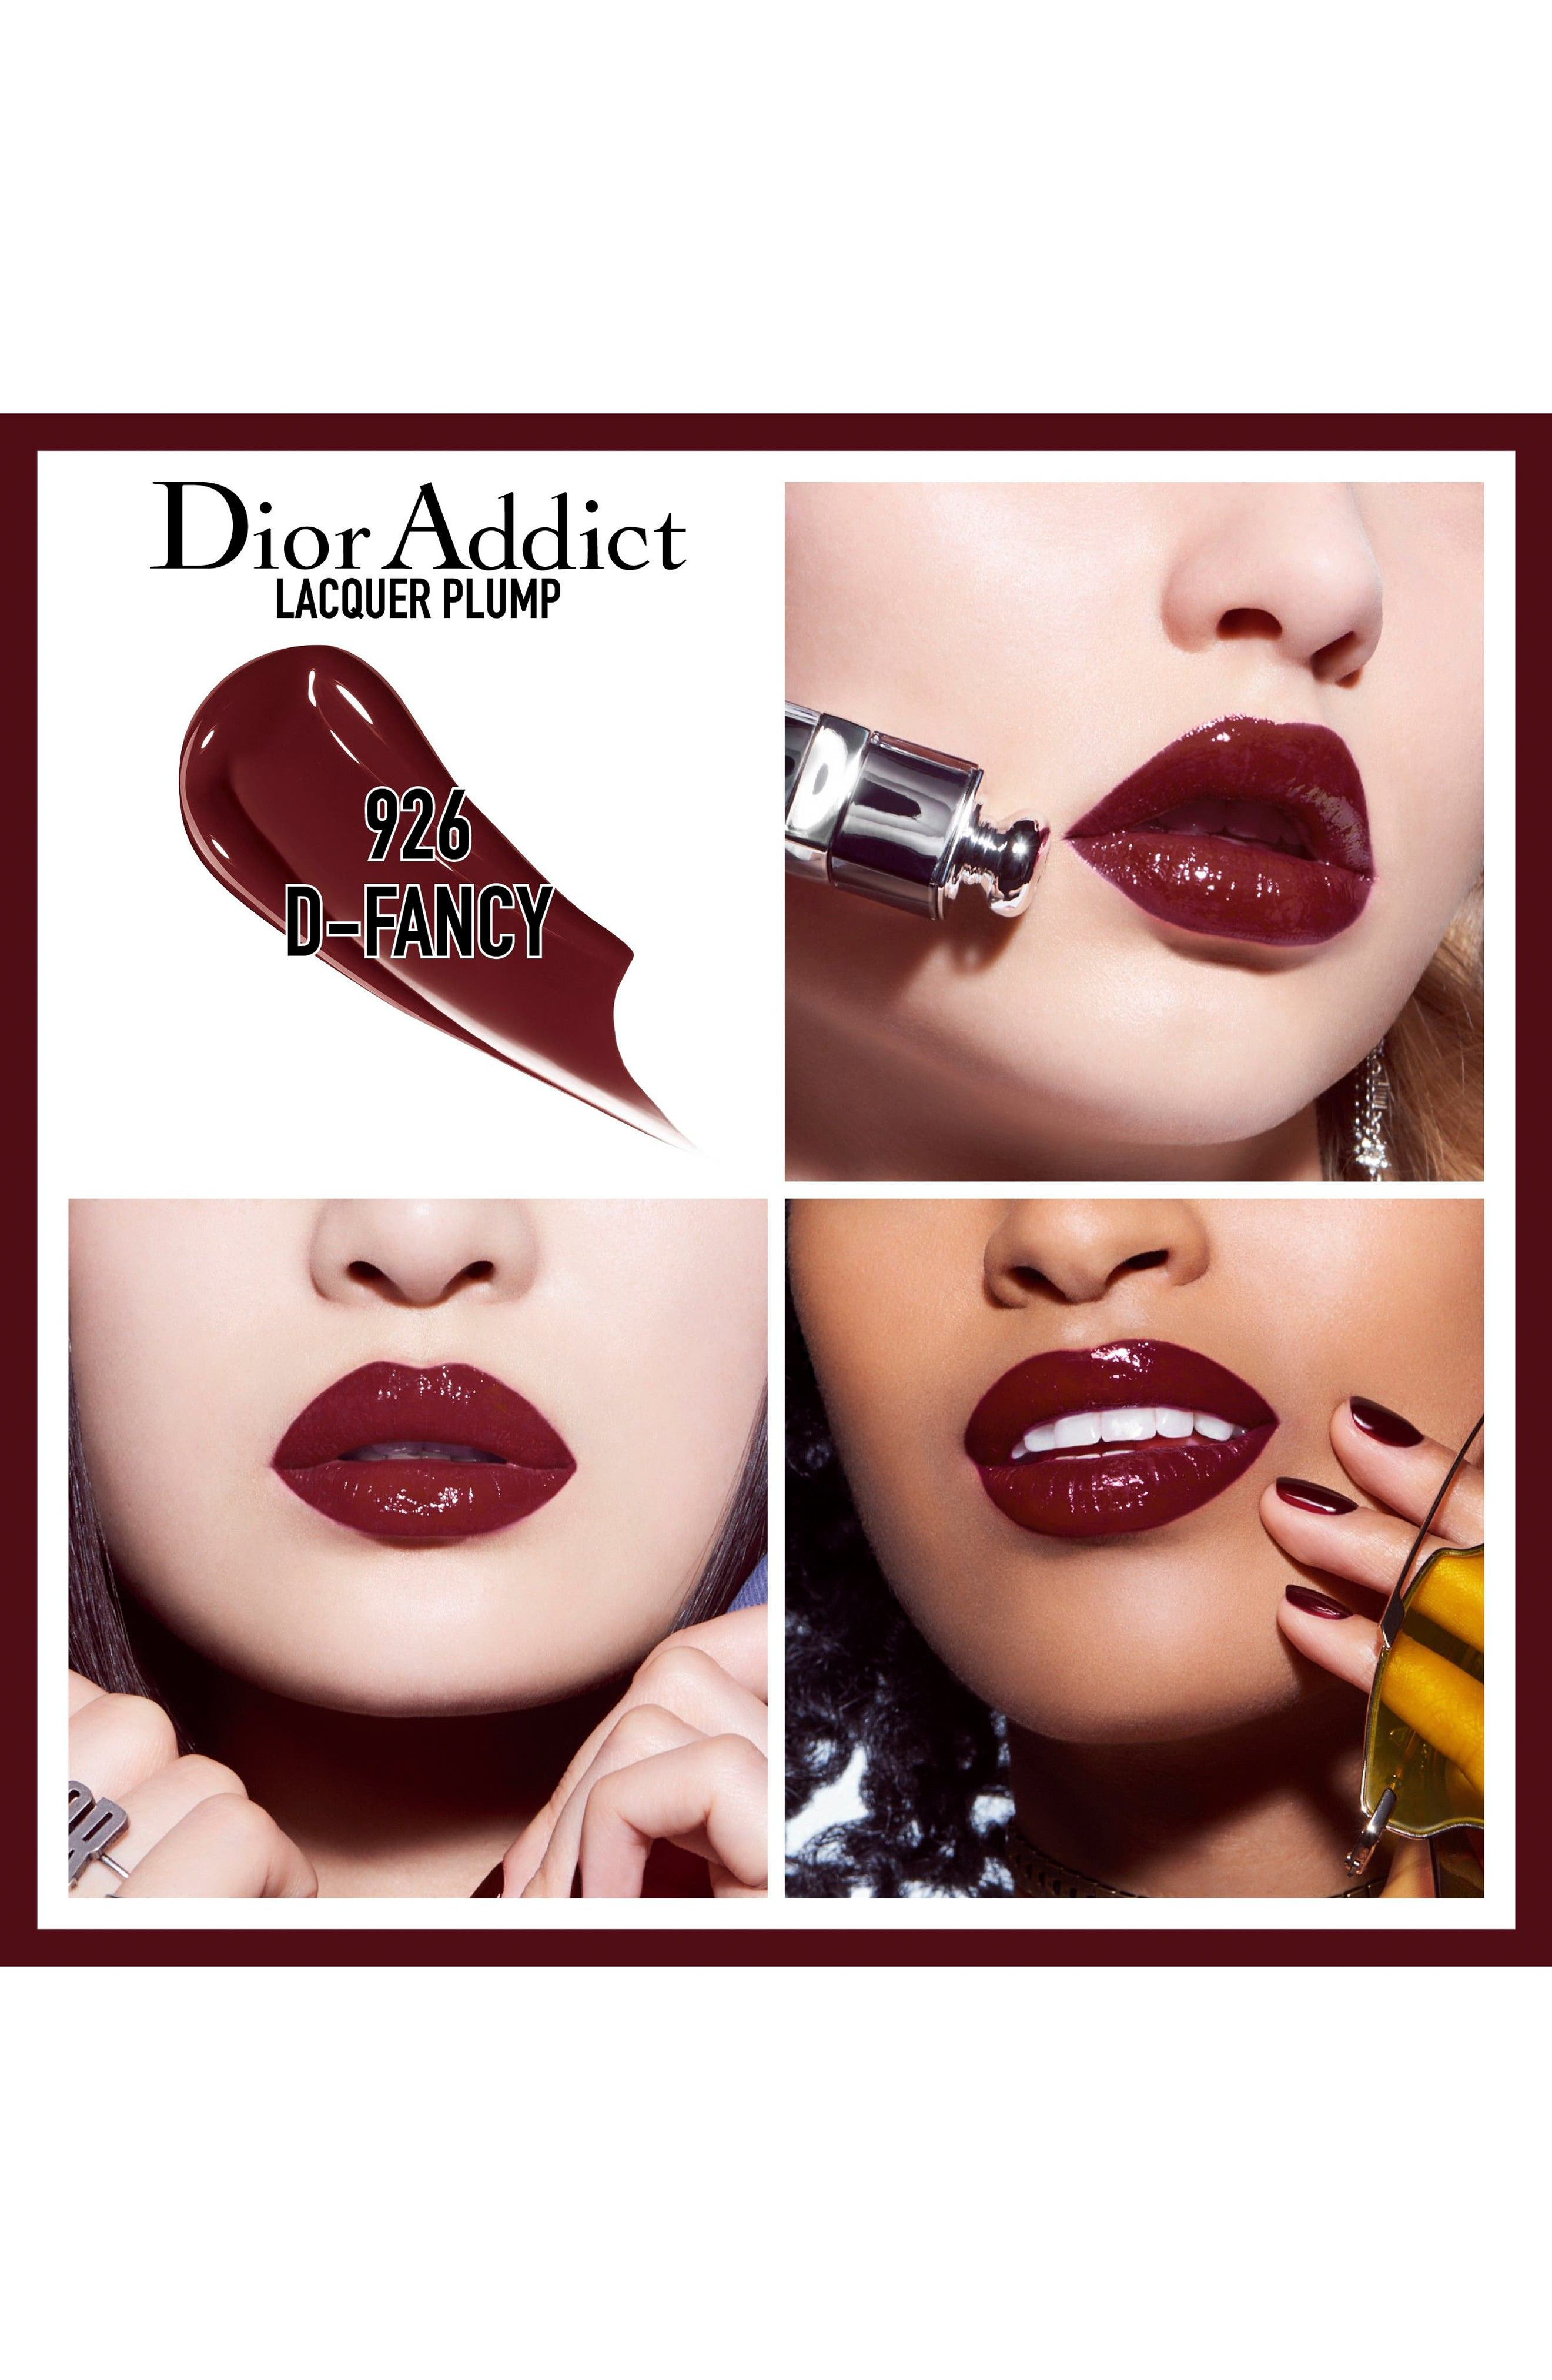 DIOR, Addict Lip Plumping Lacquer Ink, Alternate thumbnail 2, color, 926 D-FANCY / BOLD CHOCOLATE